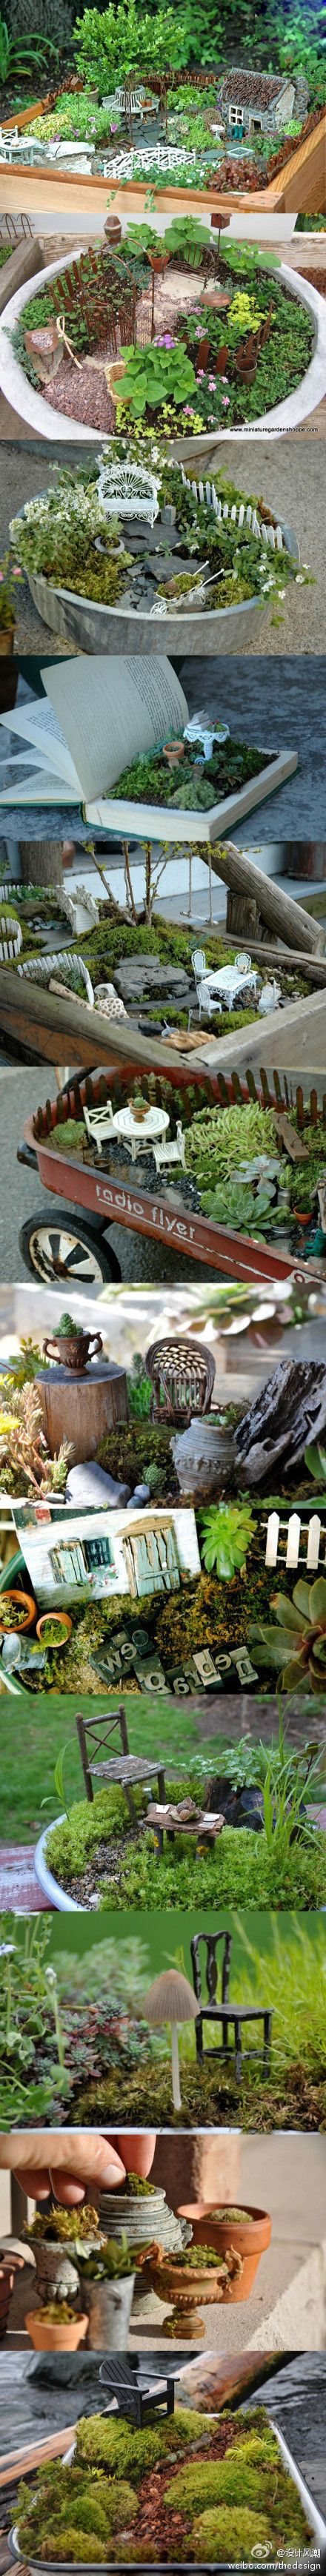 Miniature gardens!  So adorable and so creative.  Beautiful for any garden but especially nice if you don't have space.